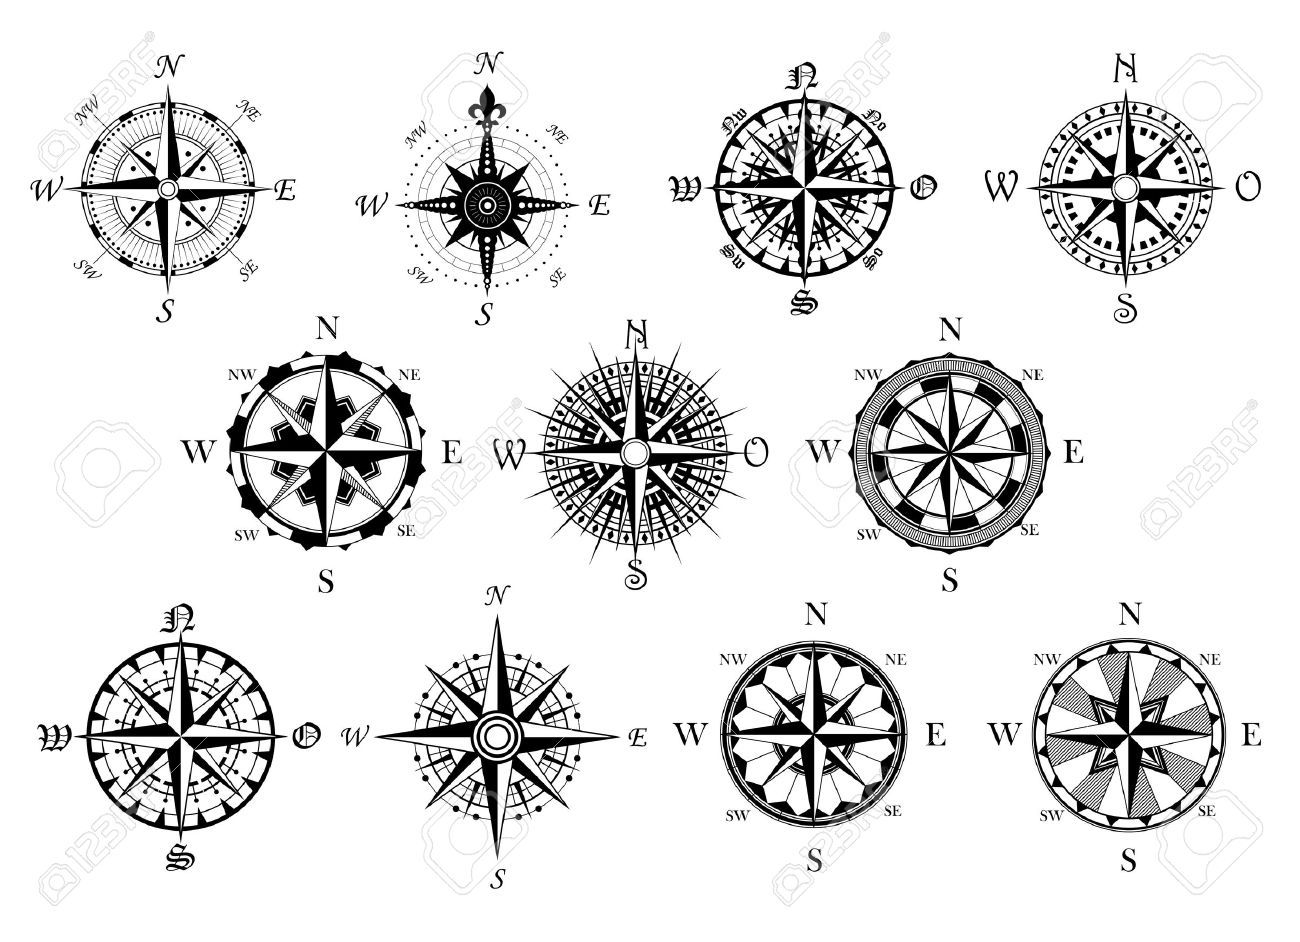 32712552-Vector-antique-compasses-with-ornate-dials-for-use-as-design--Stock-Photo.jpg 1'300×942 Pixel